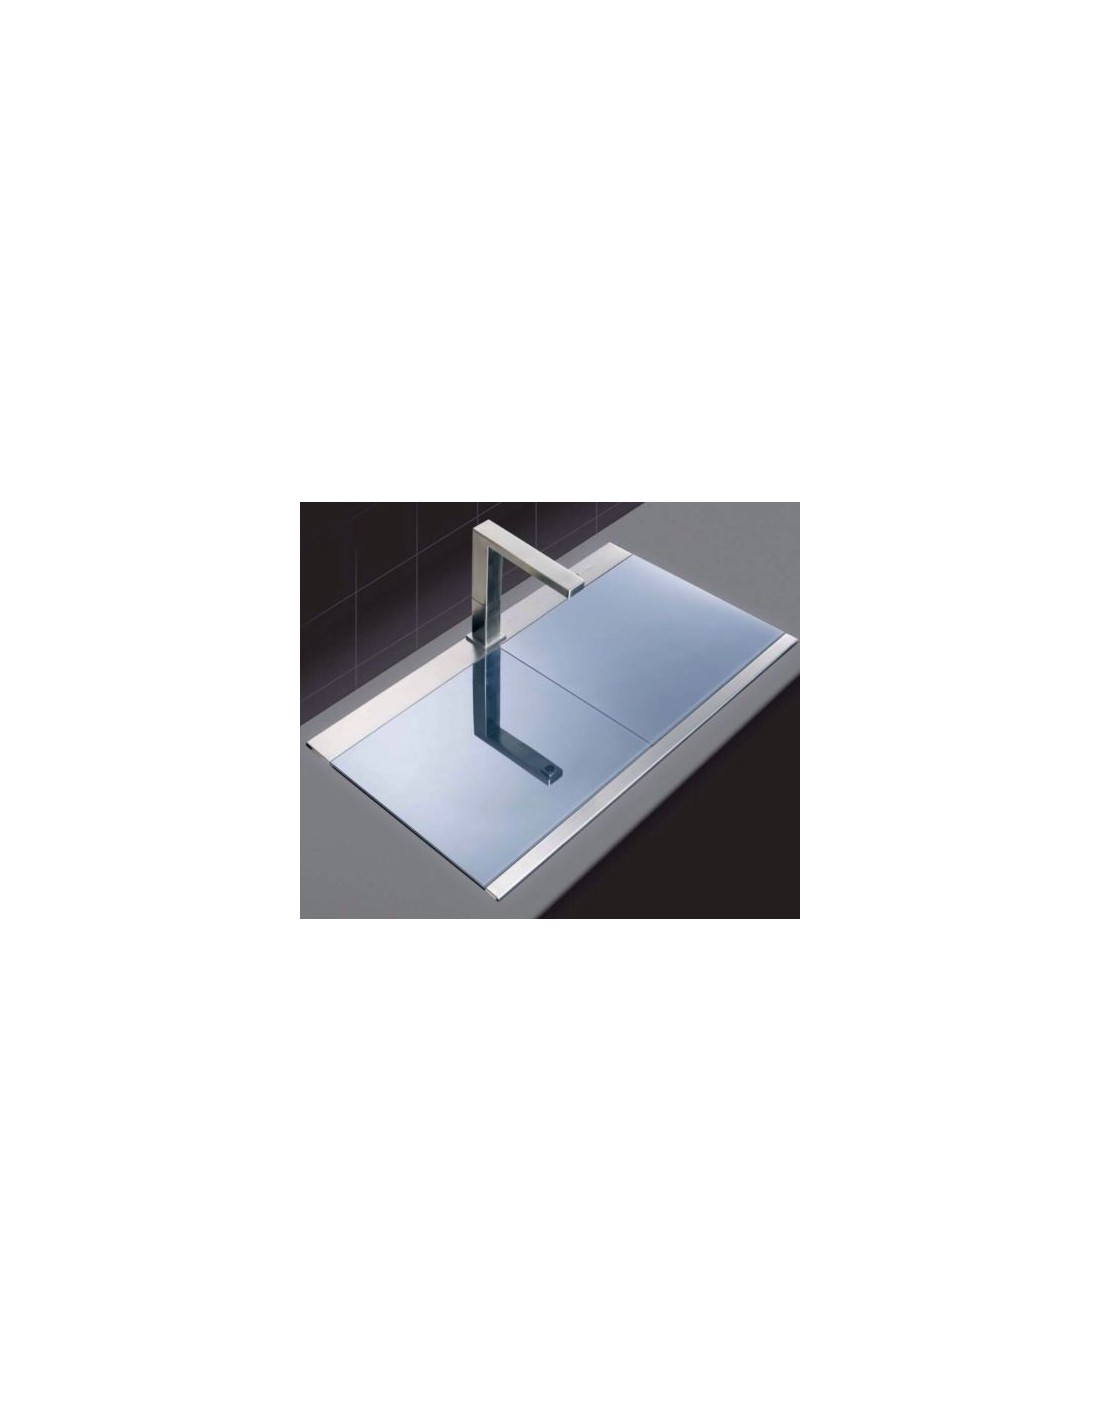 clearwater glacier gla200 bowl kitchen sink glass